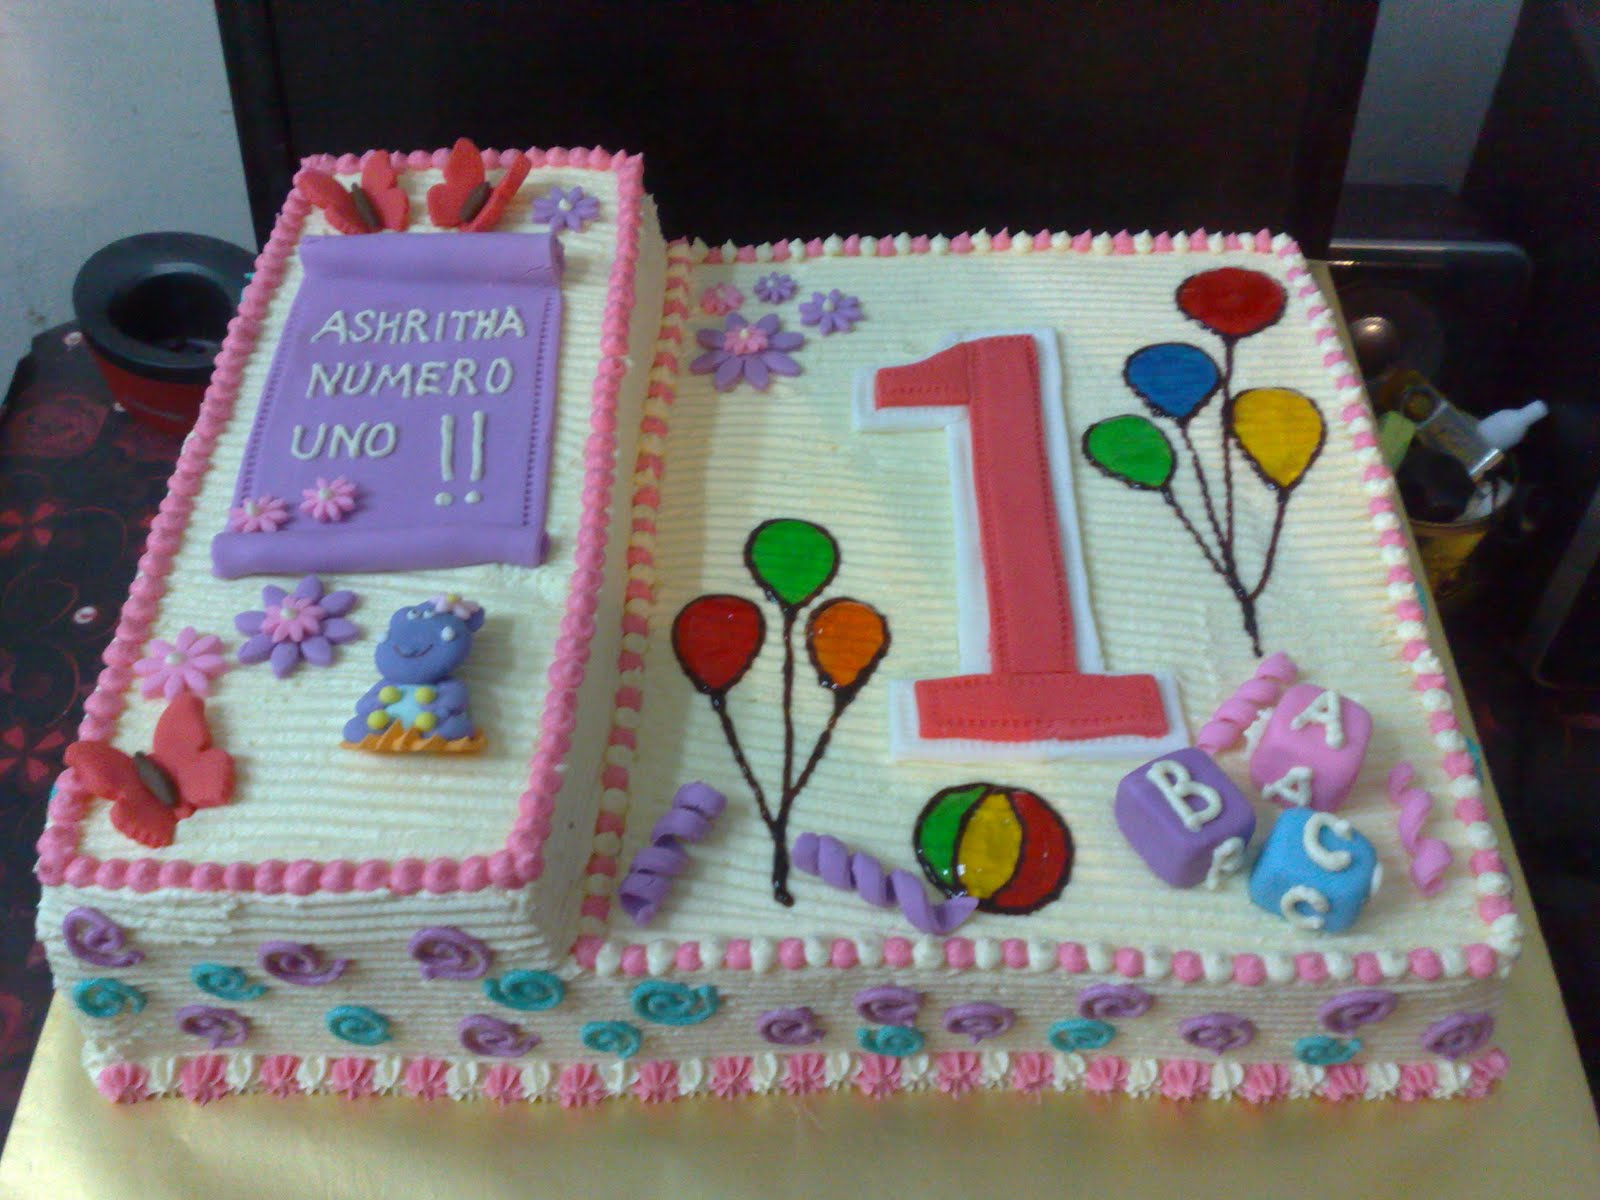 Lmis Cakes Cupcakes Ipoh Contact 012 5991233 1st Year